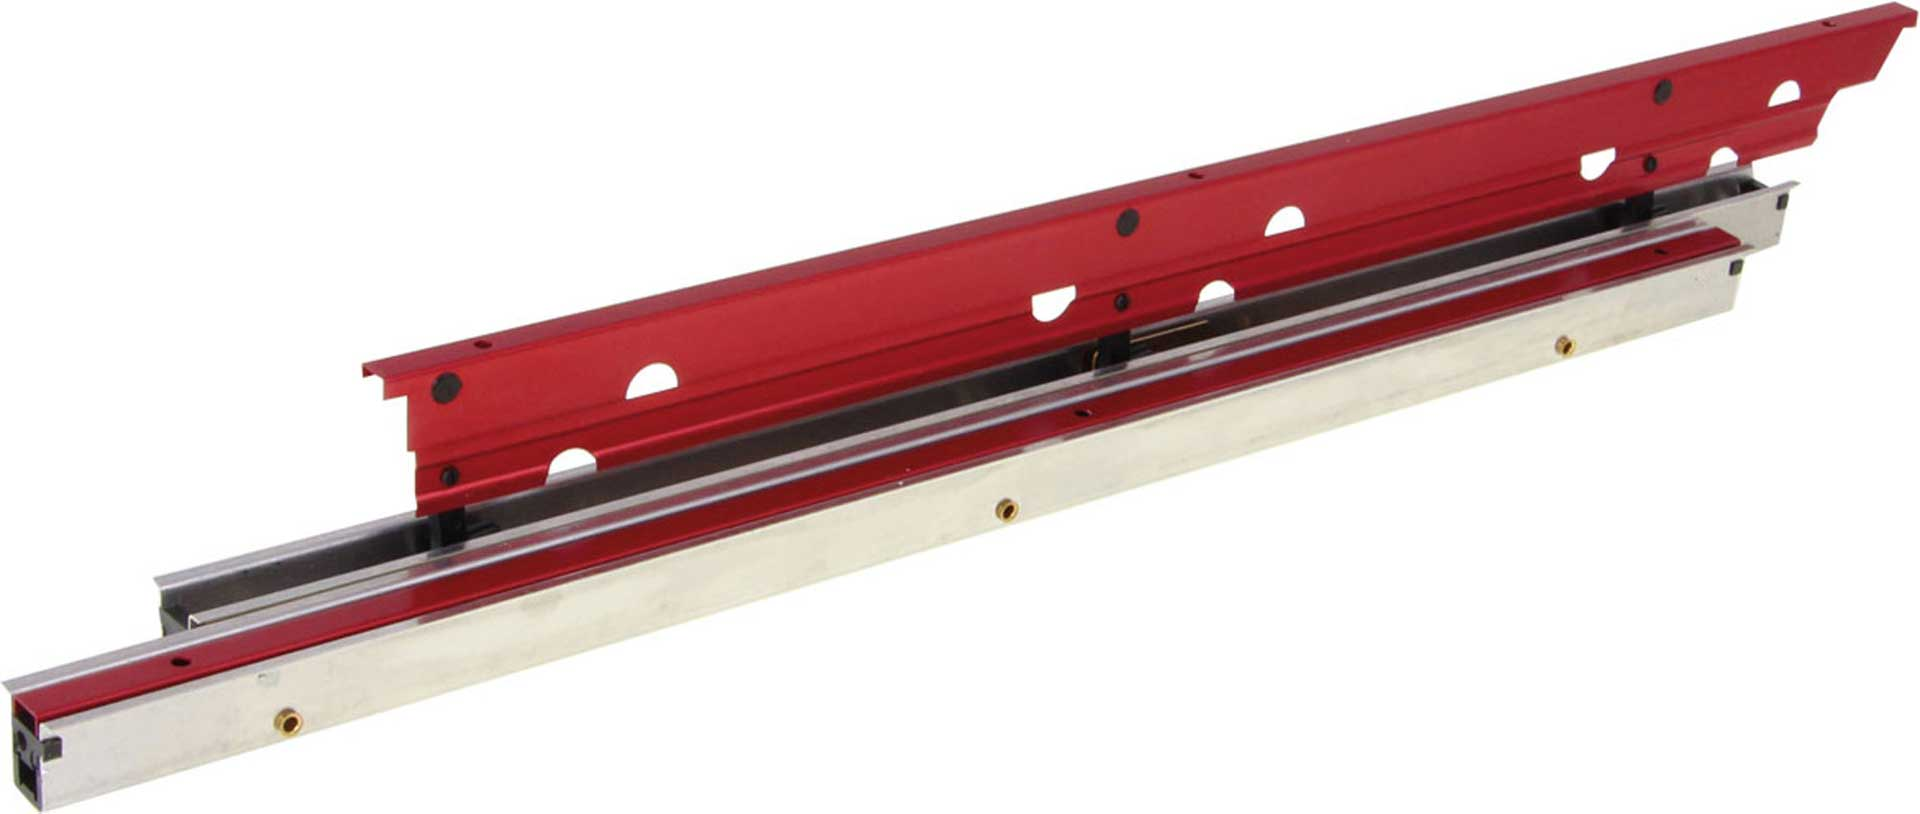 MODELLBAU LINDINGER FLAPS 37CM/16MM RED ANODISED ALUMINIUM INTERNALLY HINGED, SPOILERS